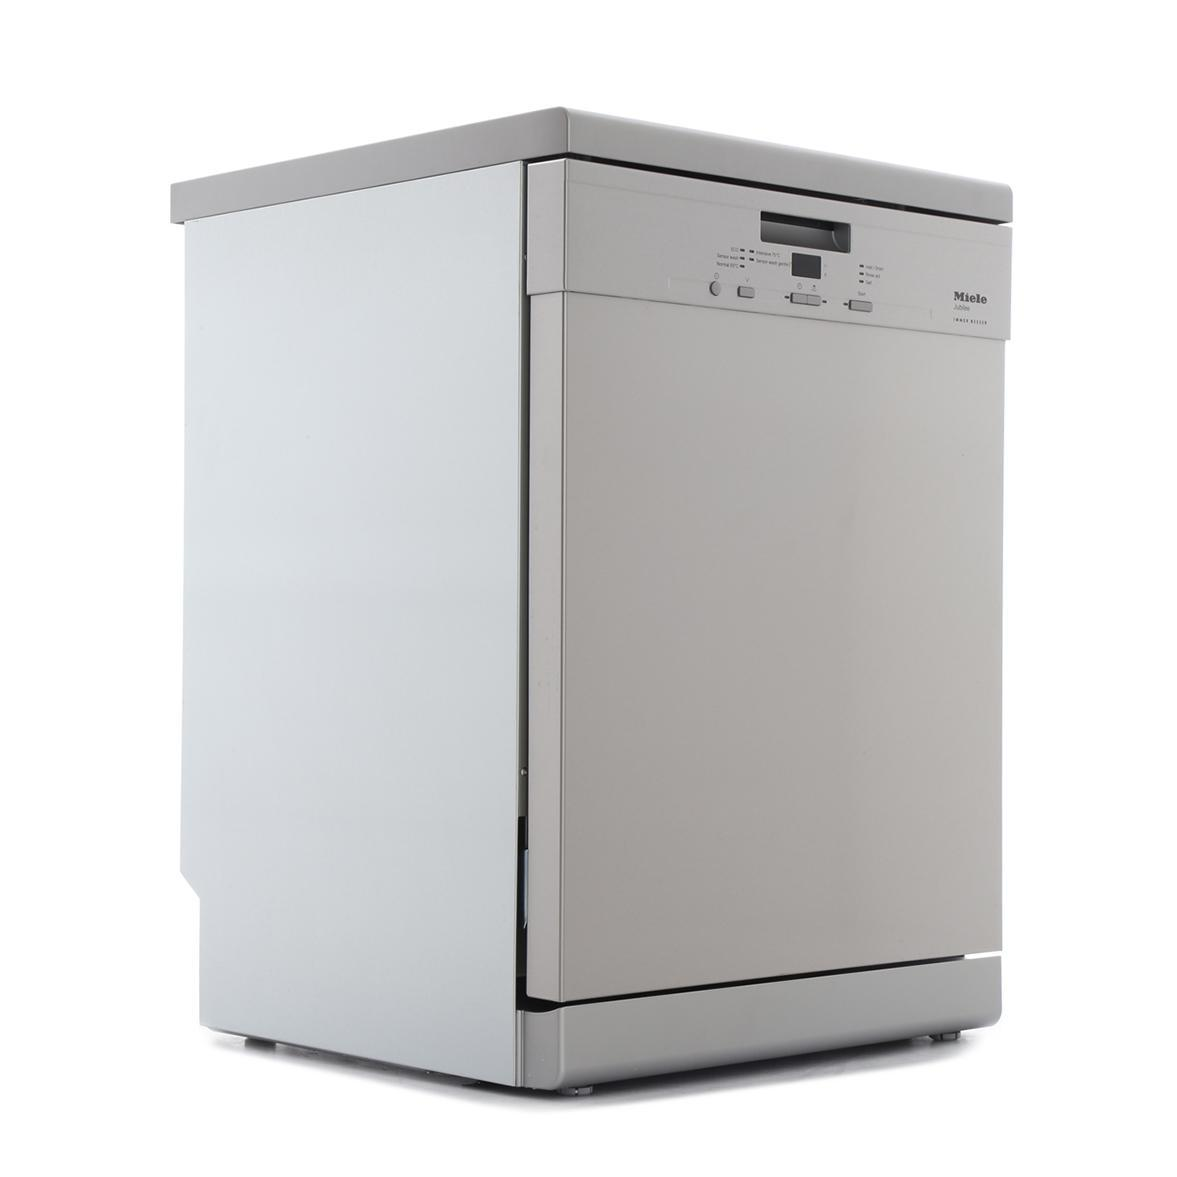 Miele New G4000 Free Standing Dishwasher in Clean Steel G4940 Cutlery Basket